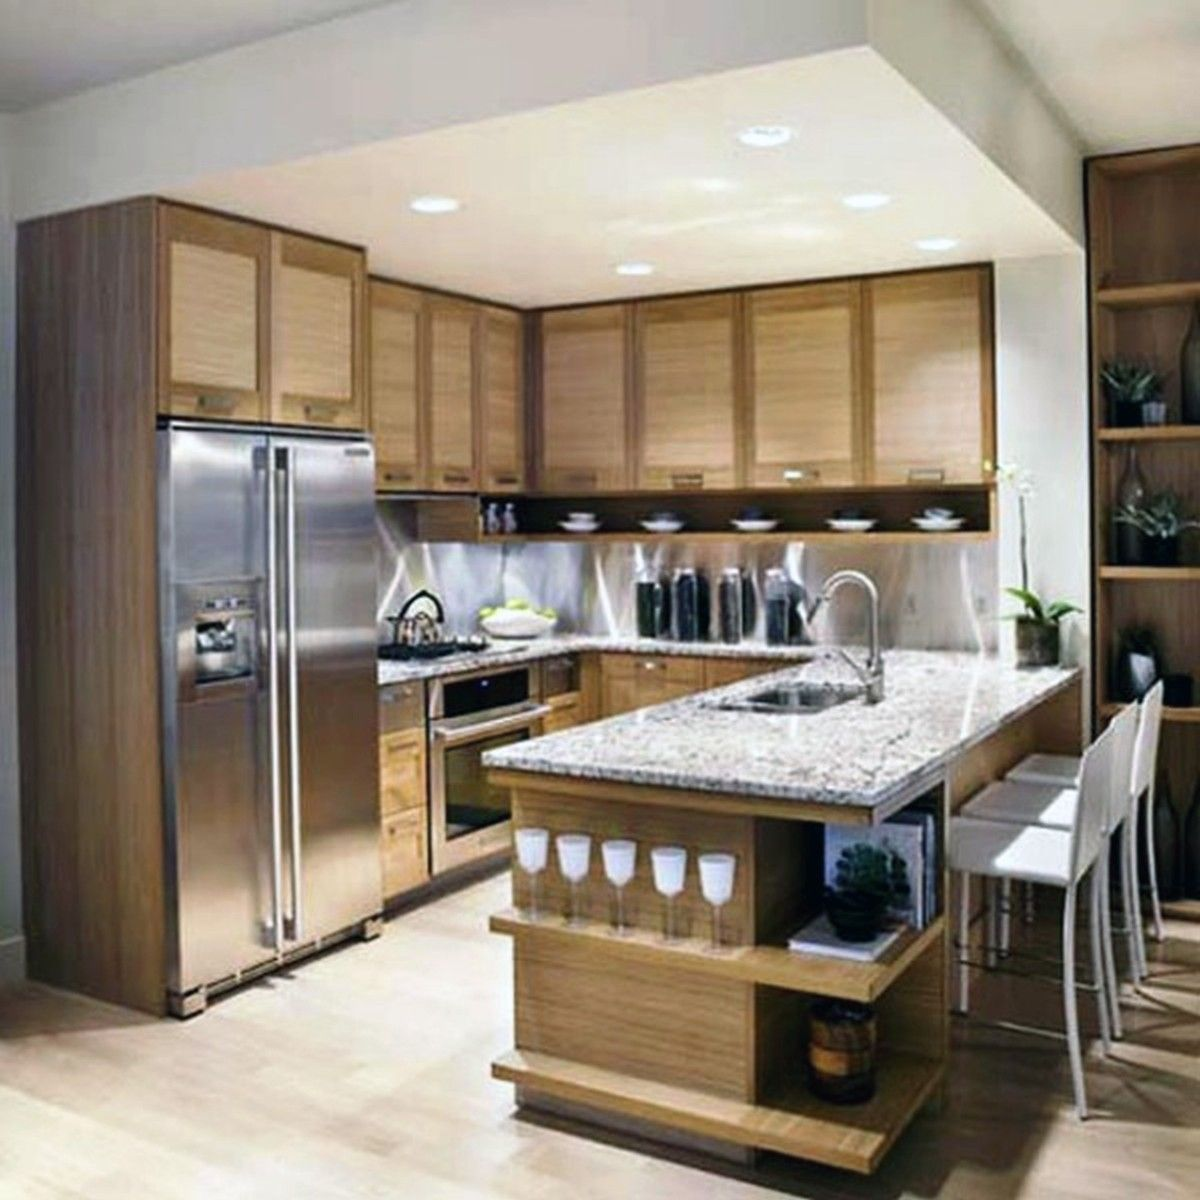 Kitchen Cabinet Design Ideas For Small Spaces: Kitchens Designs, Wonderful U Shaped Kitchen Designs For